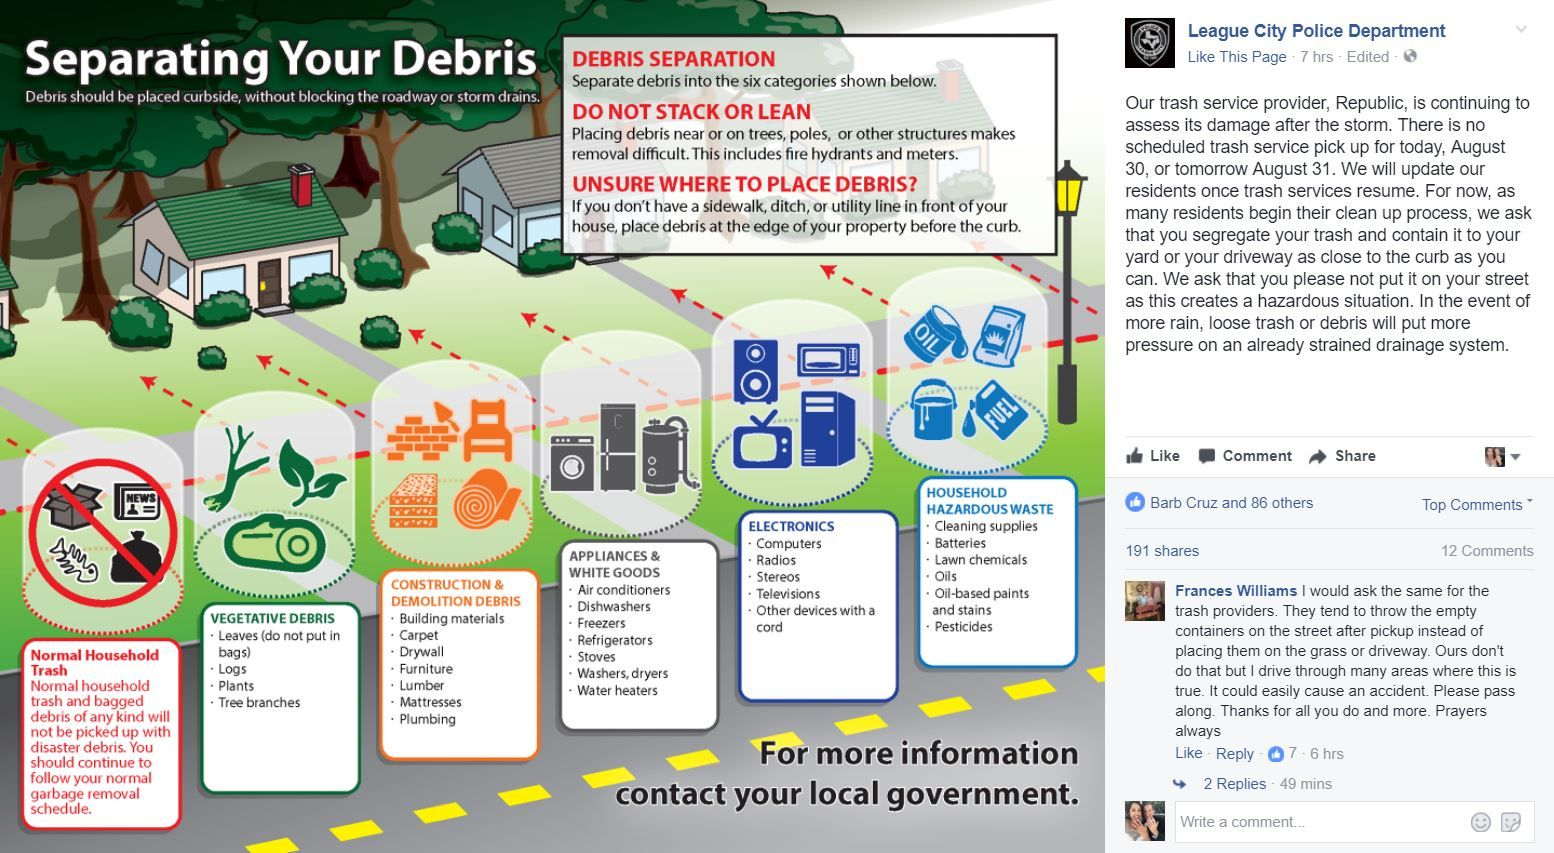 What To Do With Debris As You Clean Out Your Home Trash Service League City After The Storm